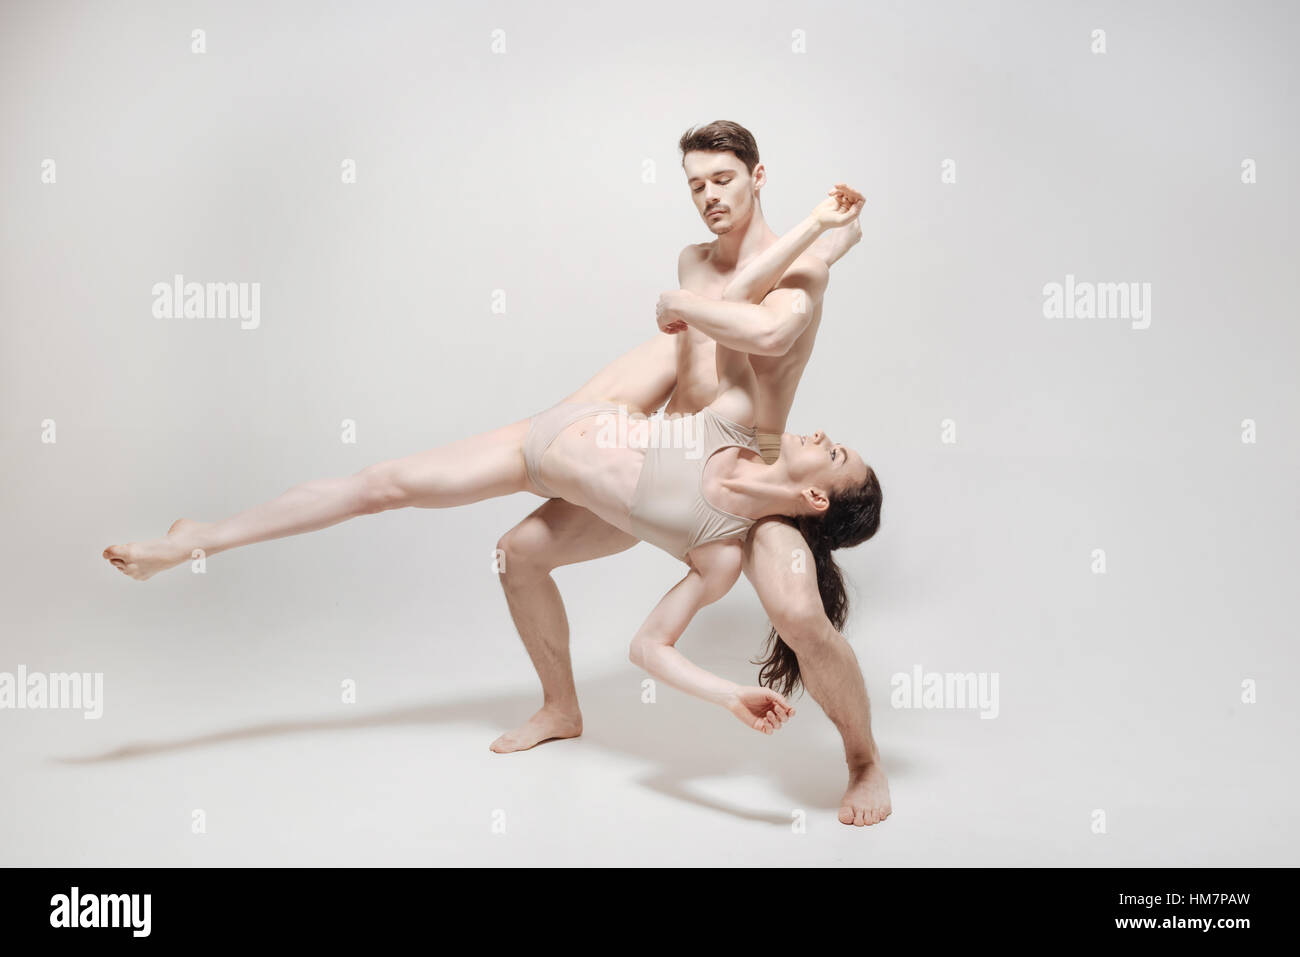 Flexible young dancers training in the white room - Stock Image